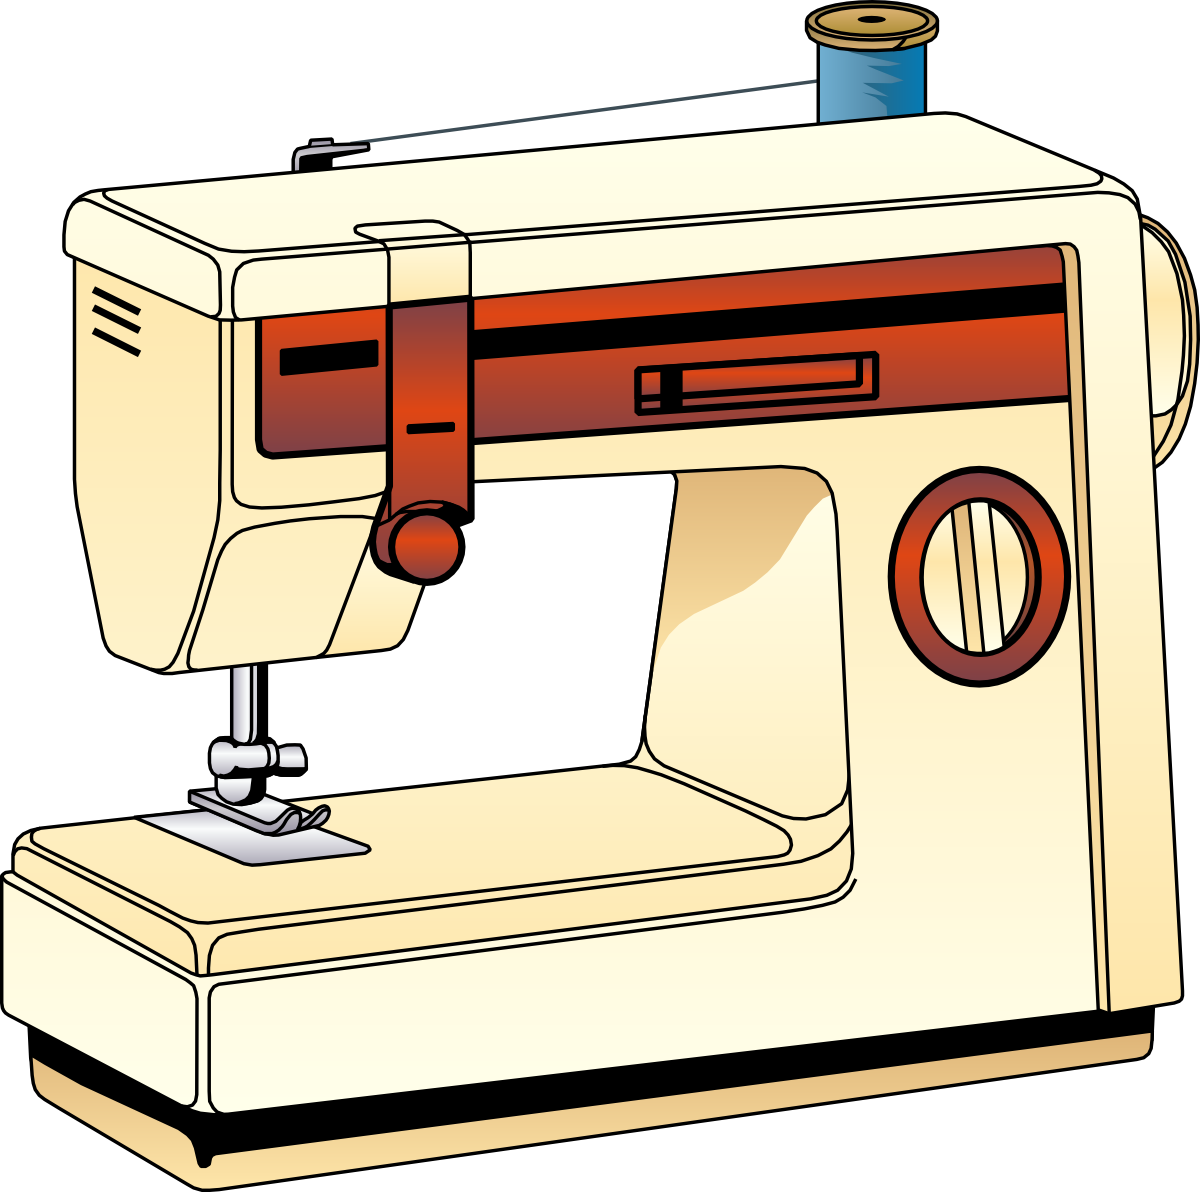 Machine Clipart.